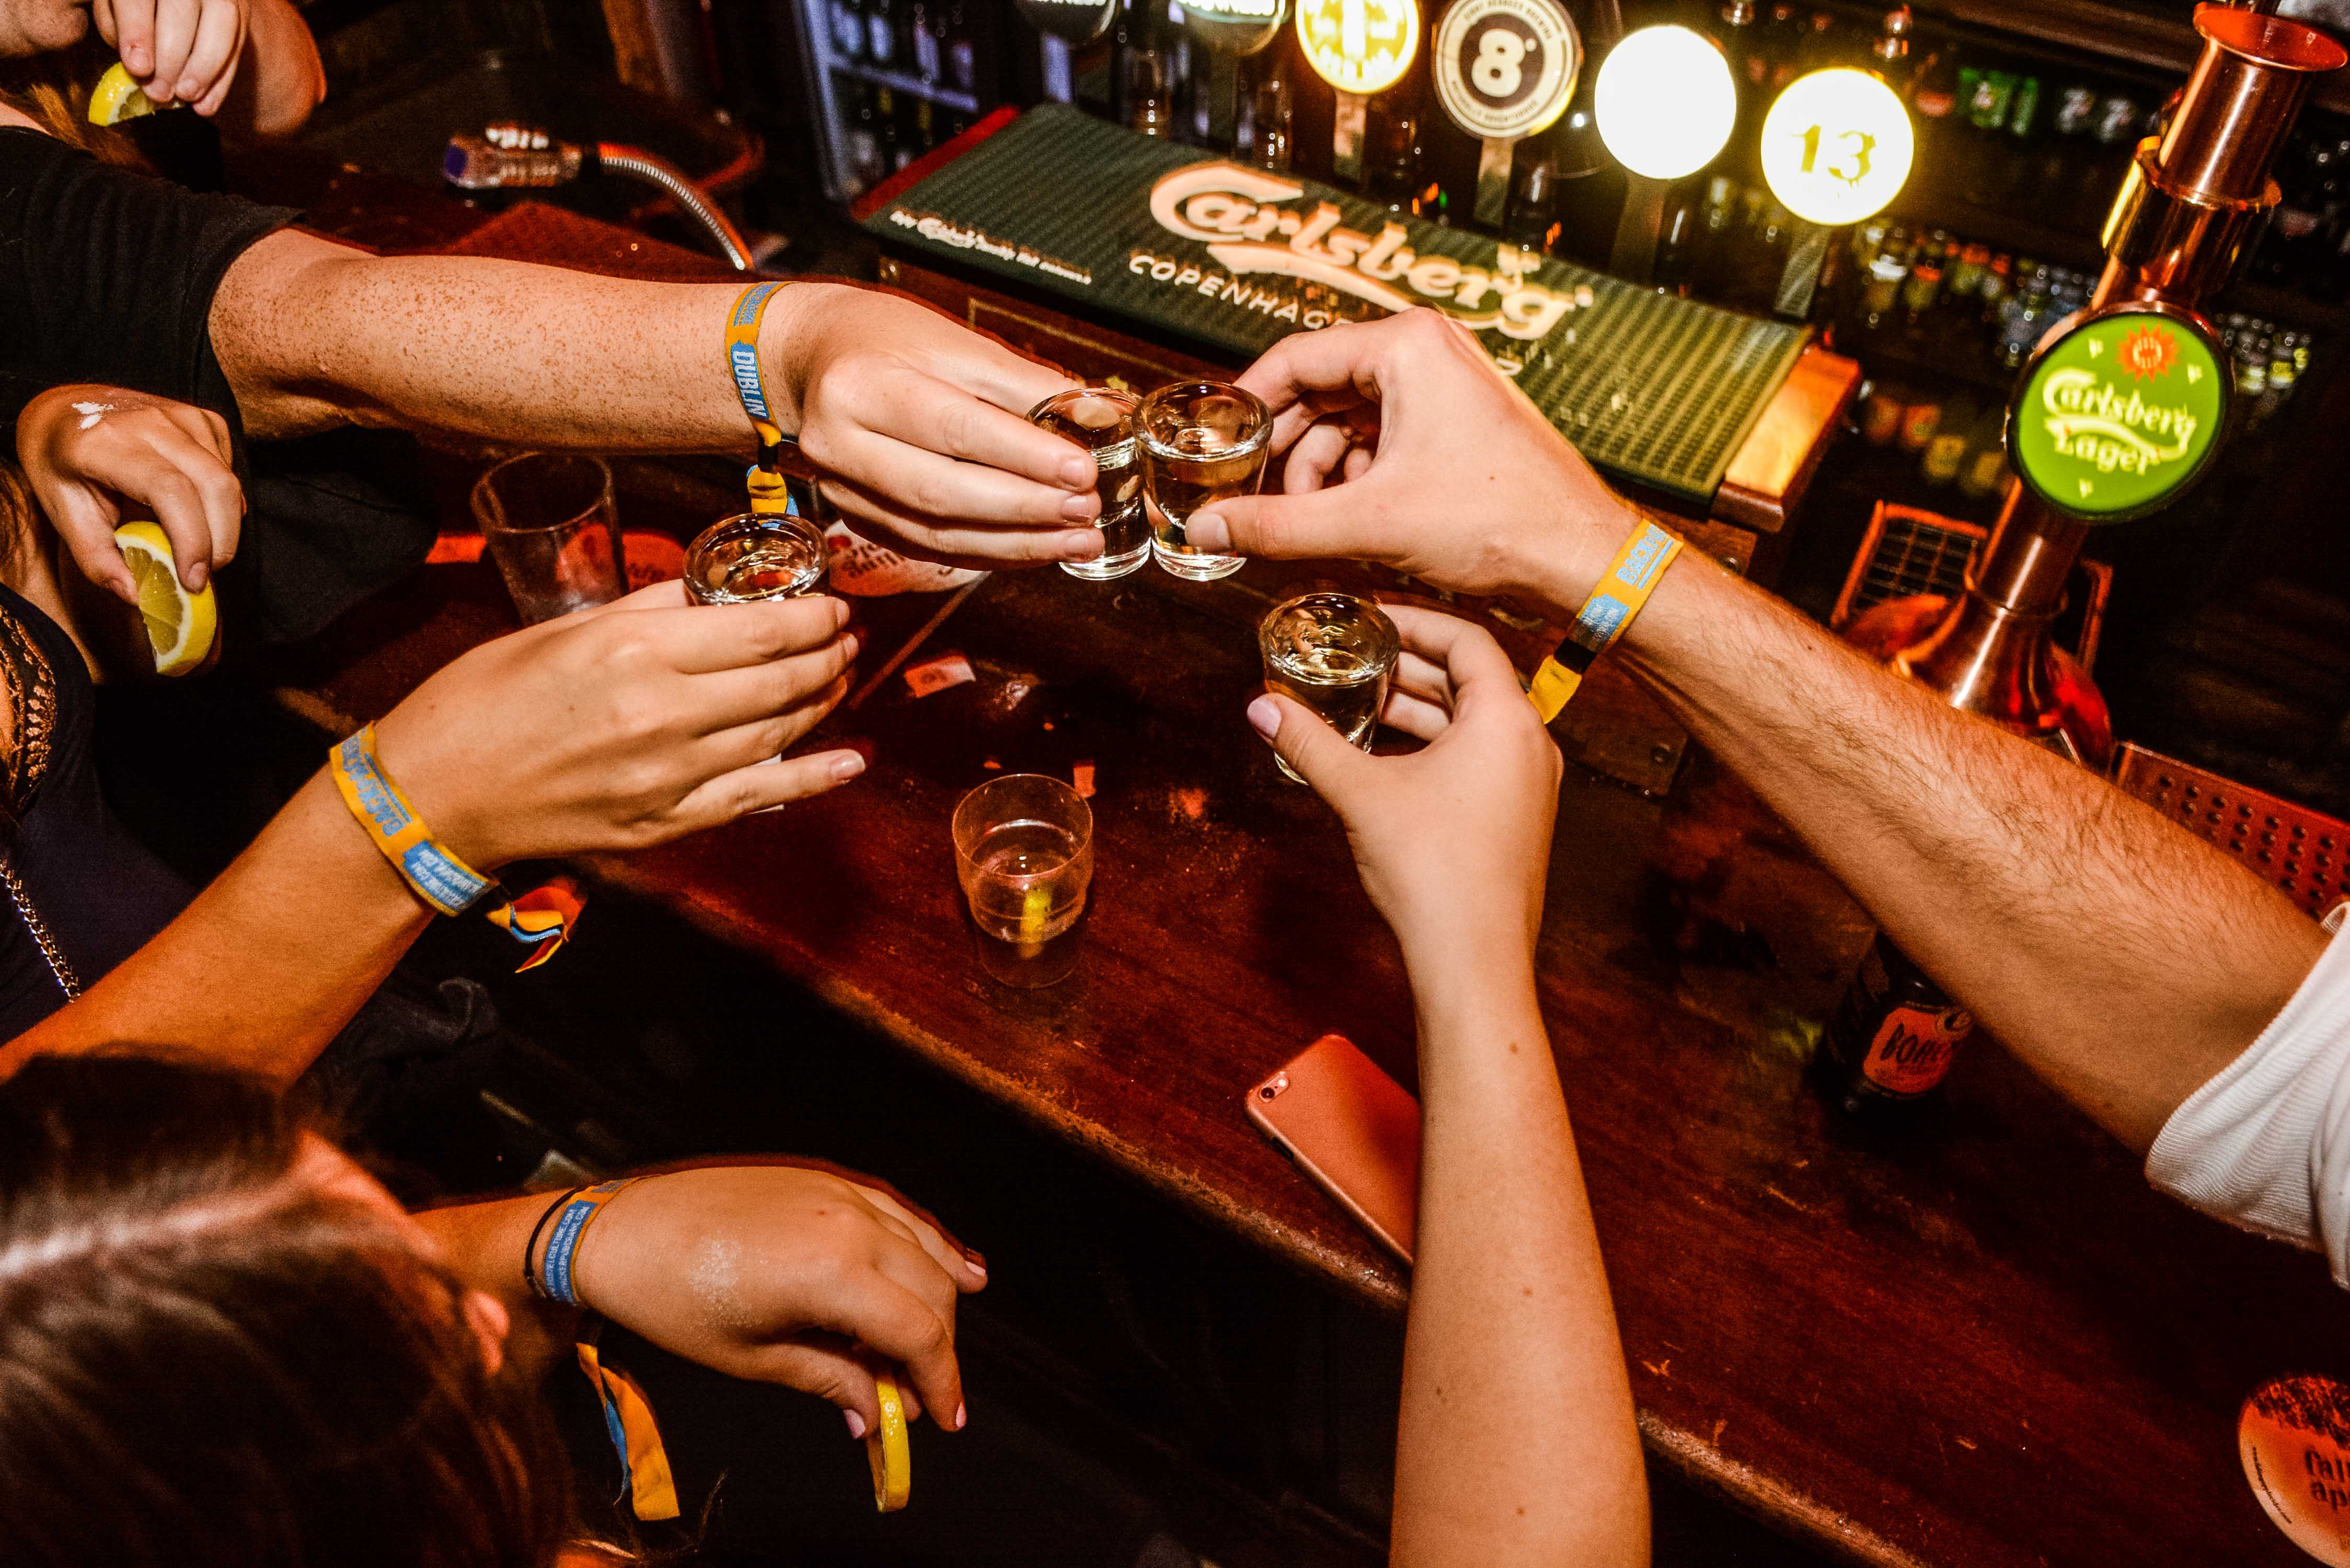 4 people's hands holding free shots and wearing Dublin pub crawl wristbands on a bar crawl in Dublin